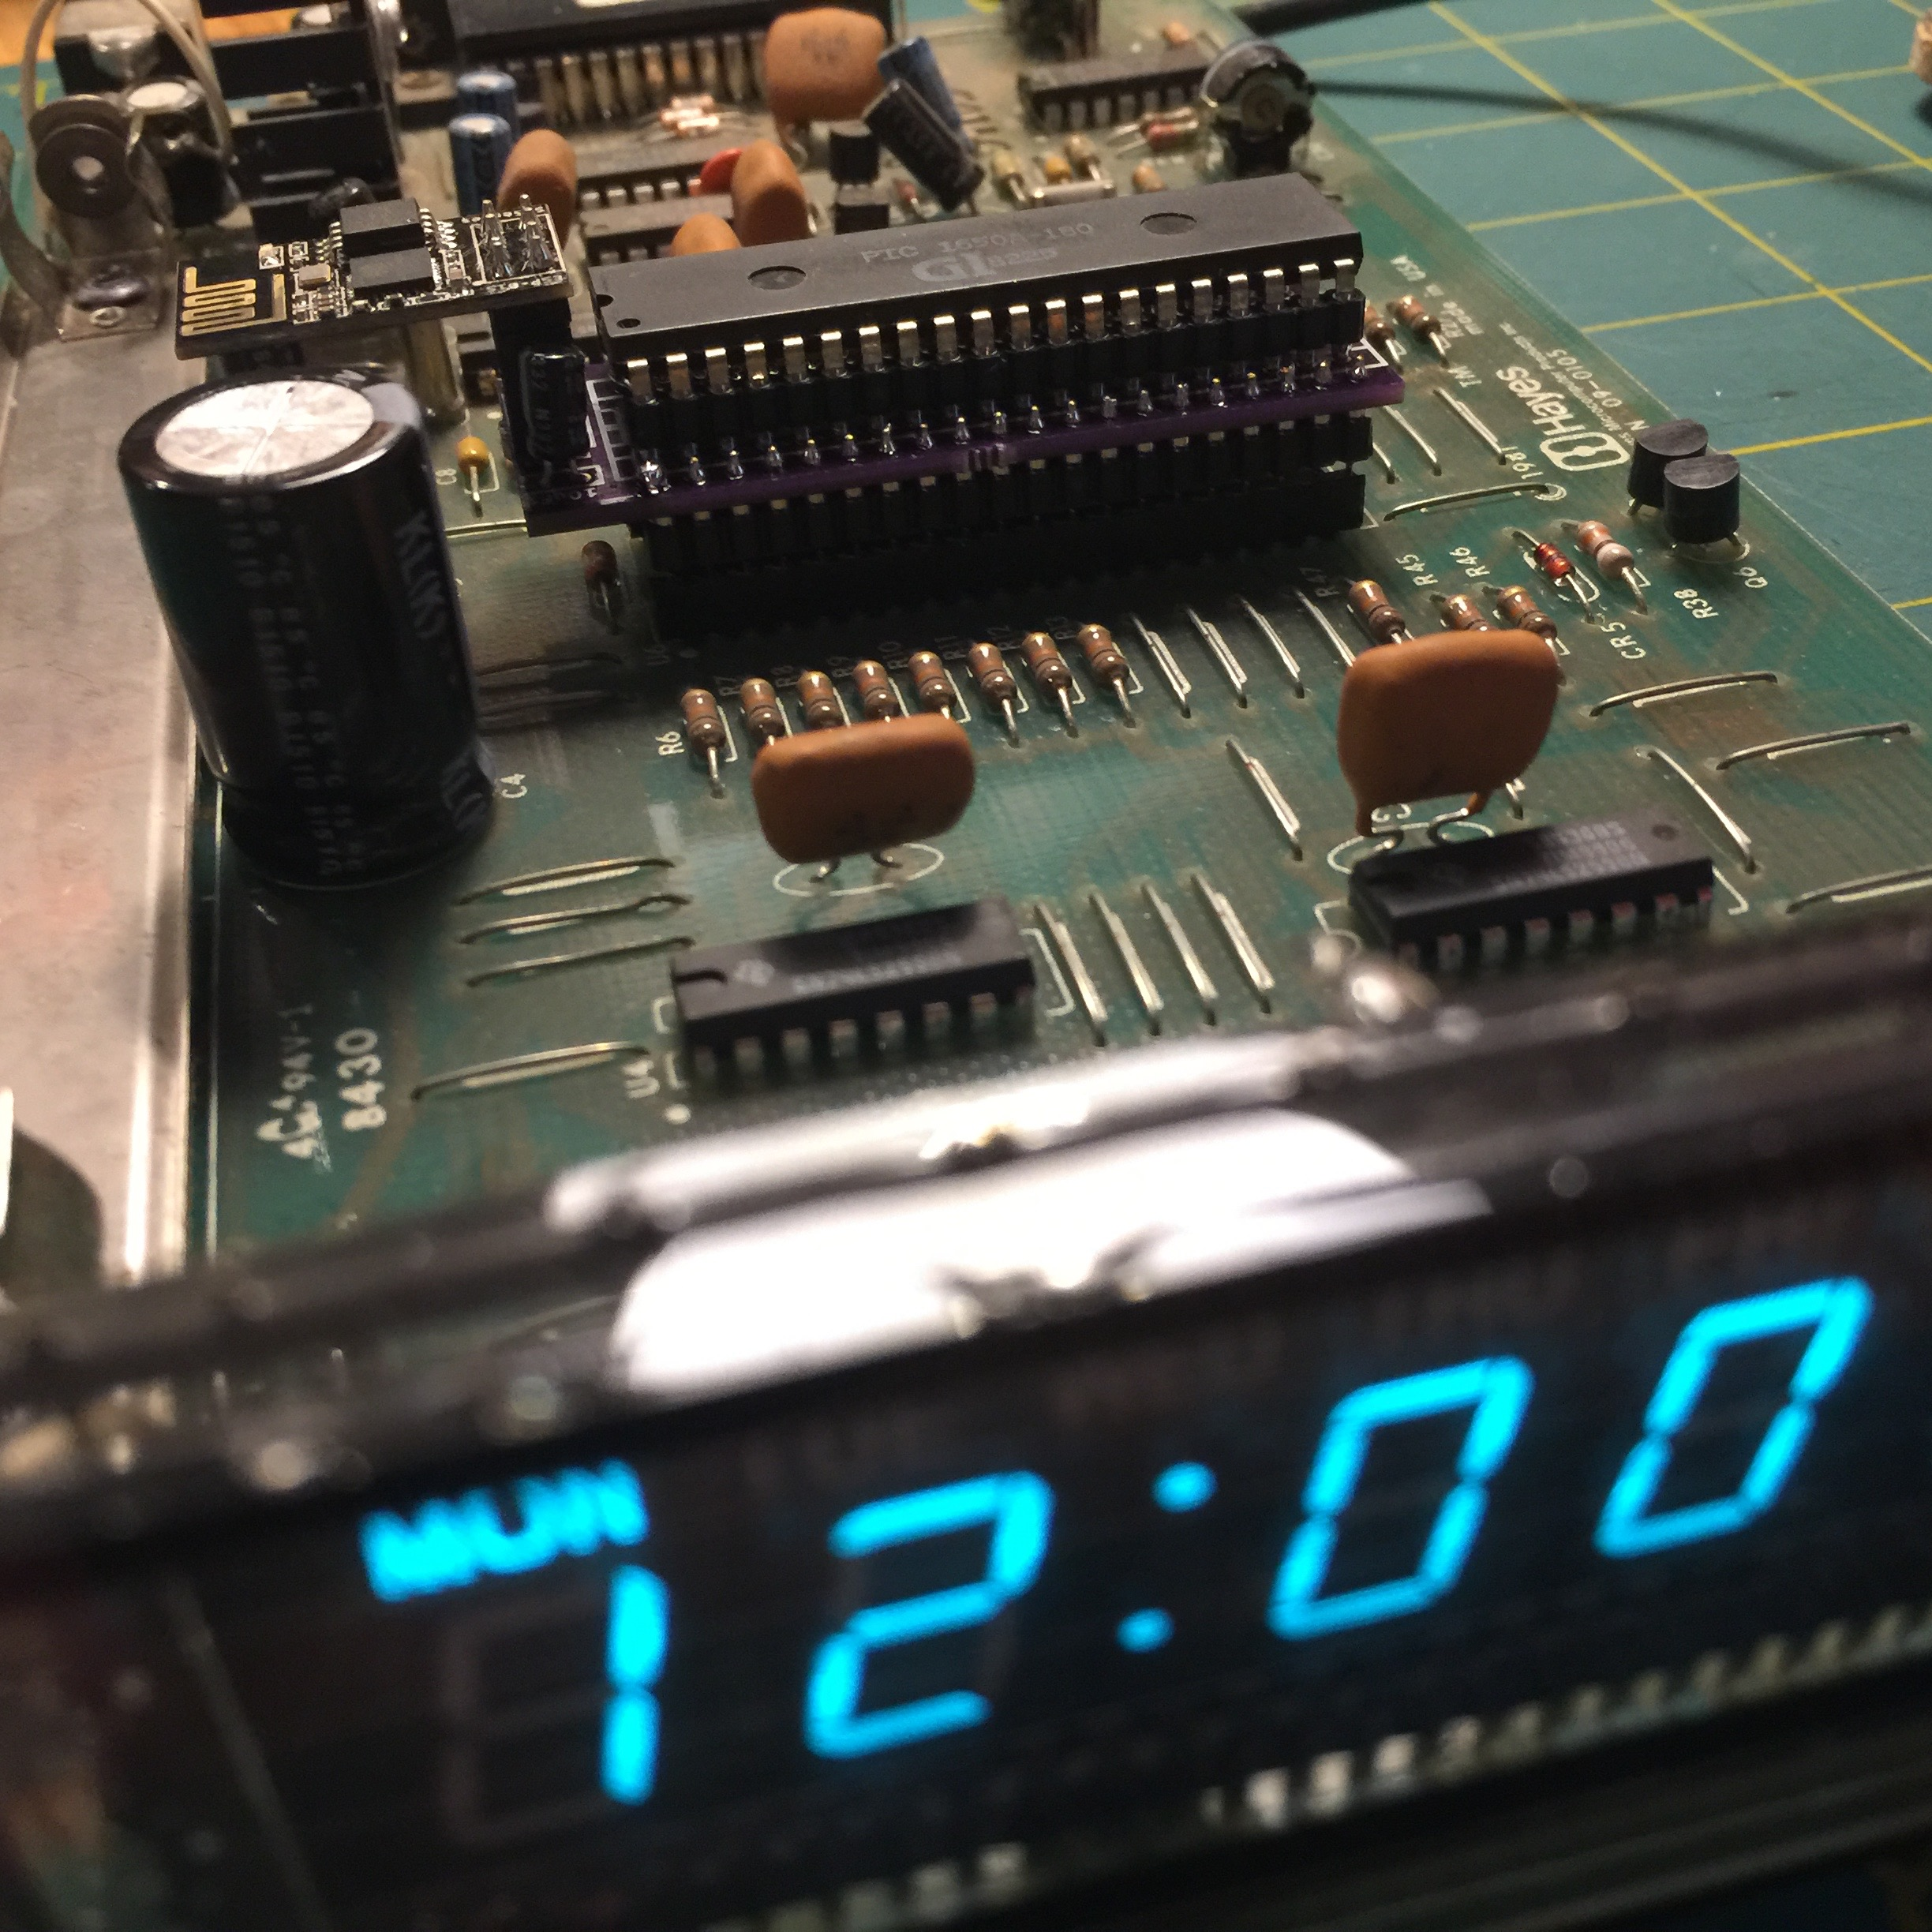 Uncategorized Commodore 64 Rev A Motherboard Schematics From 1982 Hayes Chronograph Vfd And